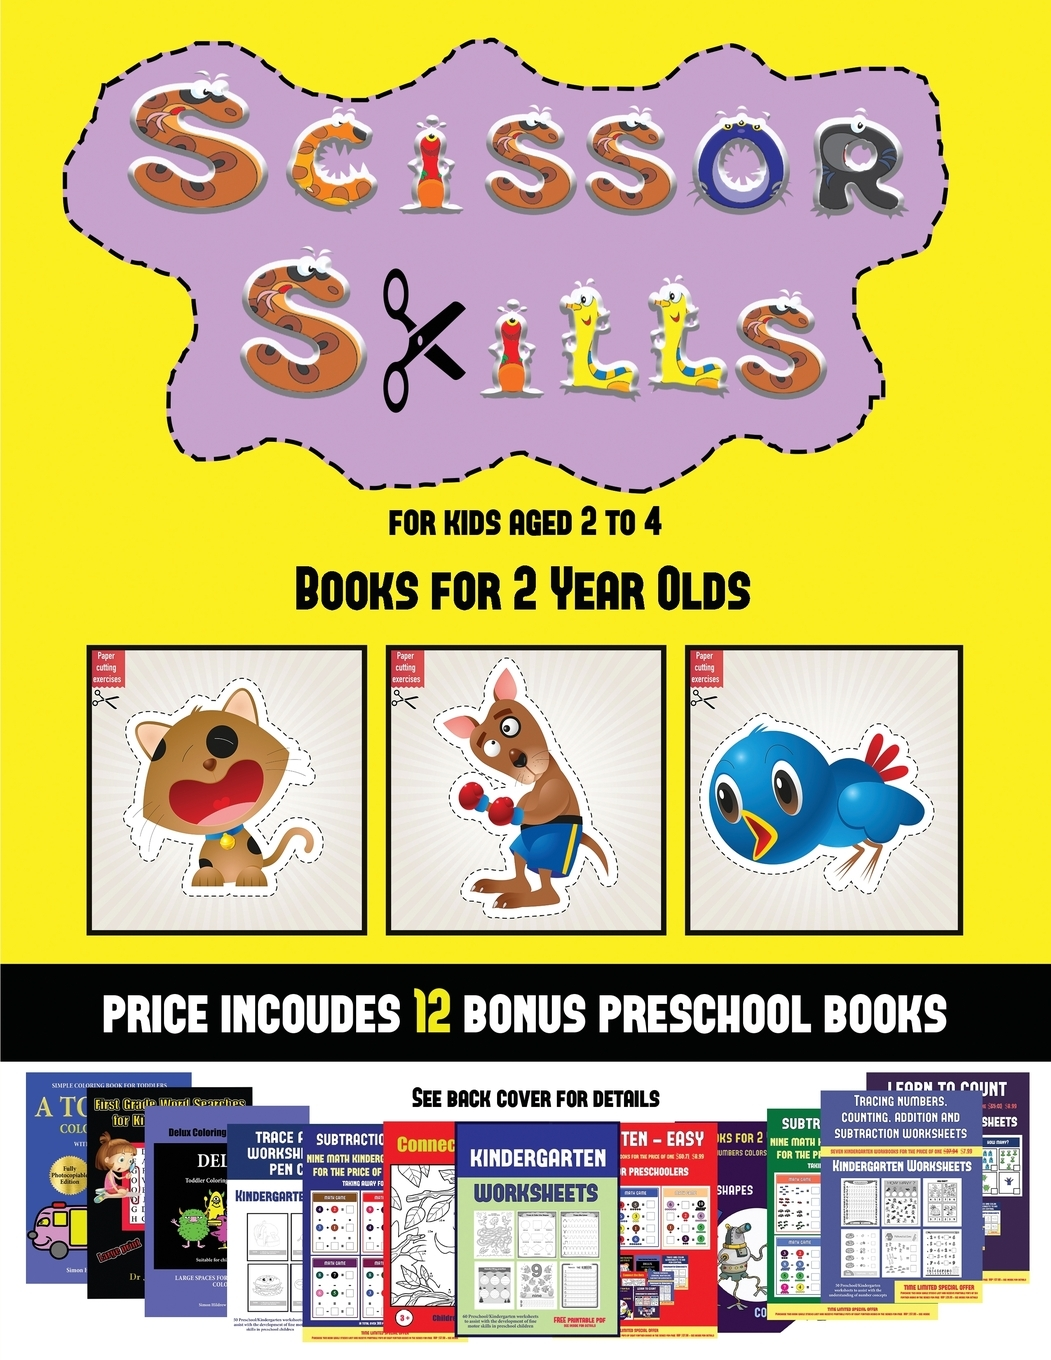 Books For 2 Year Olds Scissor Skills For Kids Aged 2 To 4